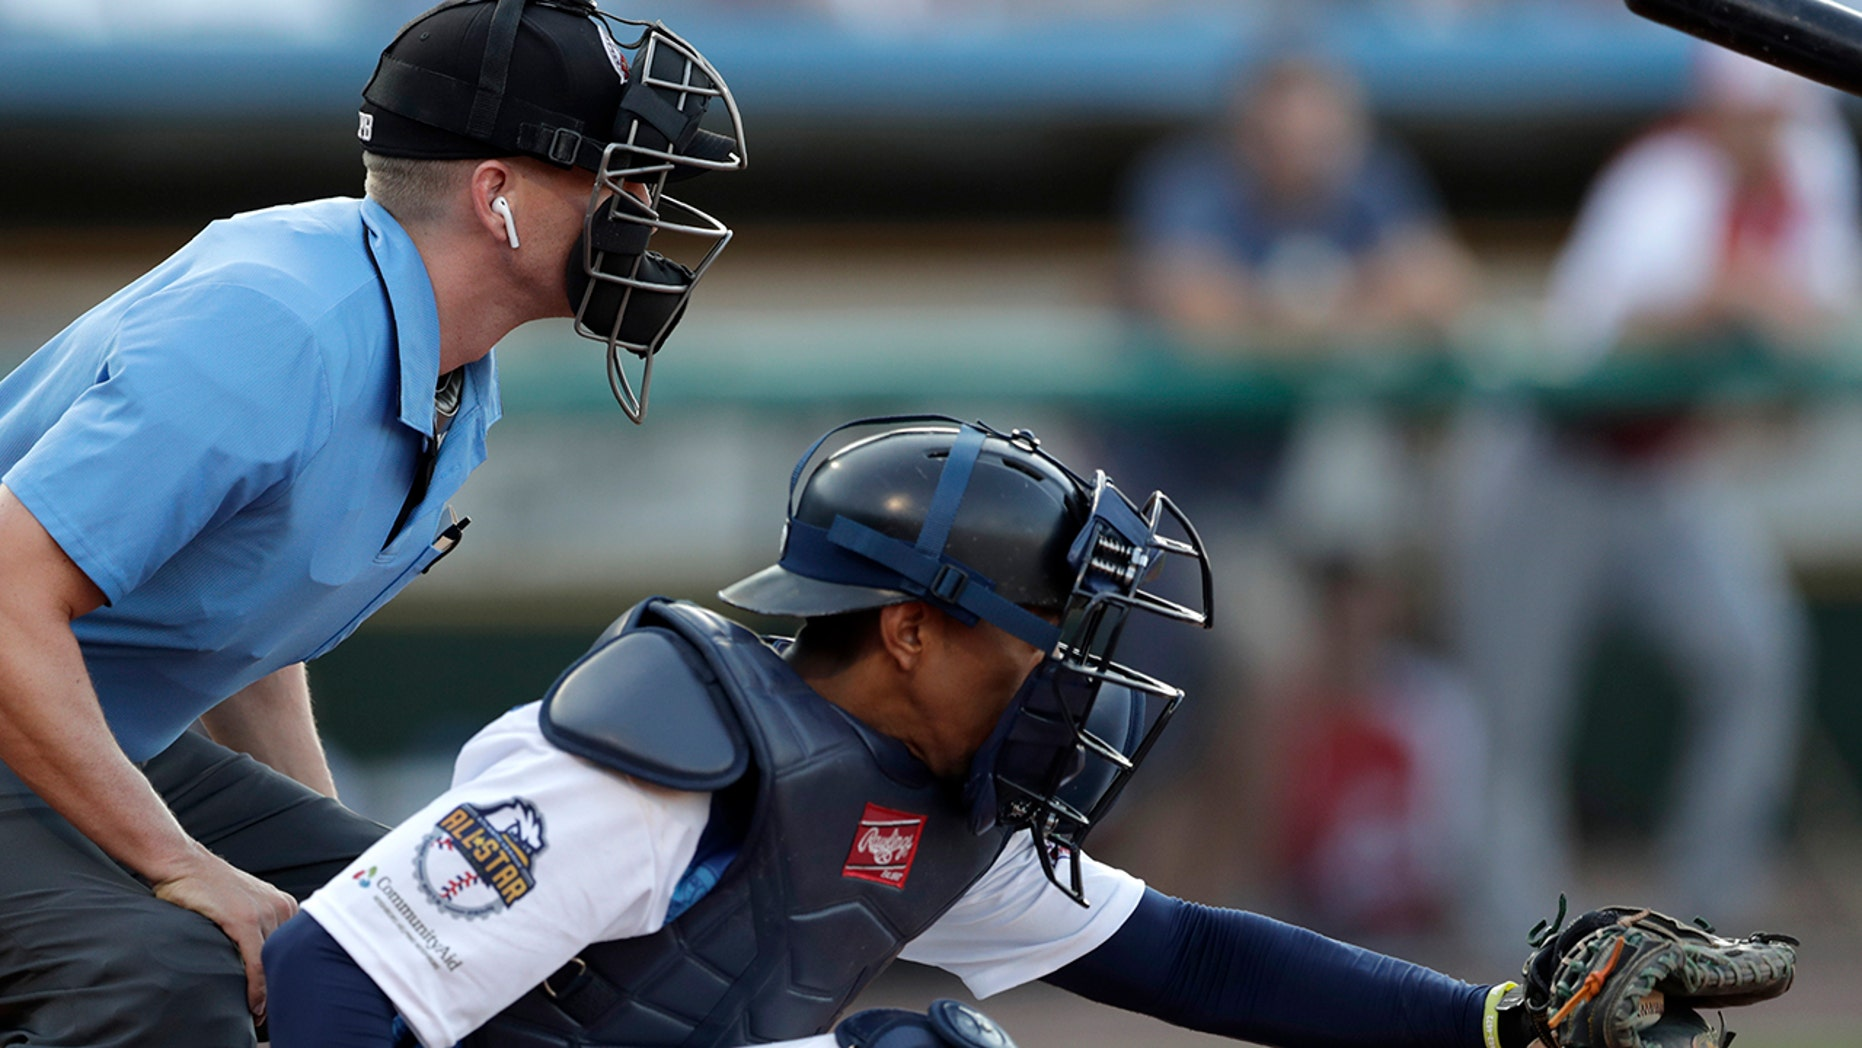 Home image referee Brian deBrauwere, left, huddles behind Freedom Division catcher James Skelton, of a York Revolution, as a central wears an earpiece during a initial inning of a Atlantic League All-Star teenager joining round game, Wednesday, Jul 10, 2019, in York, Pa. (AP Photo/Julio Cortez)